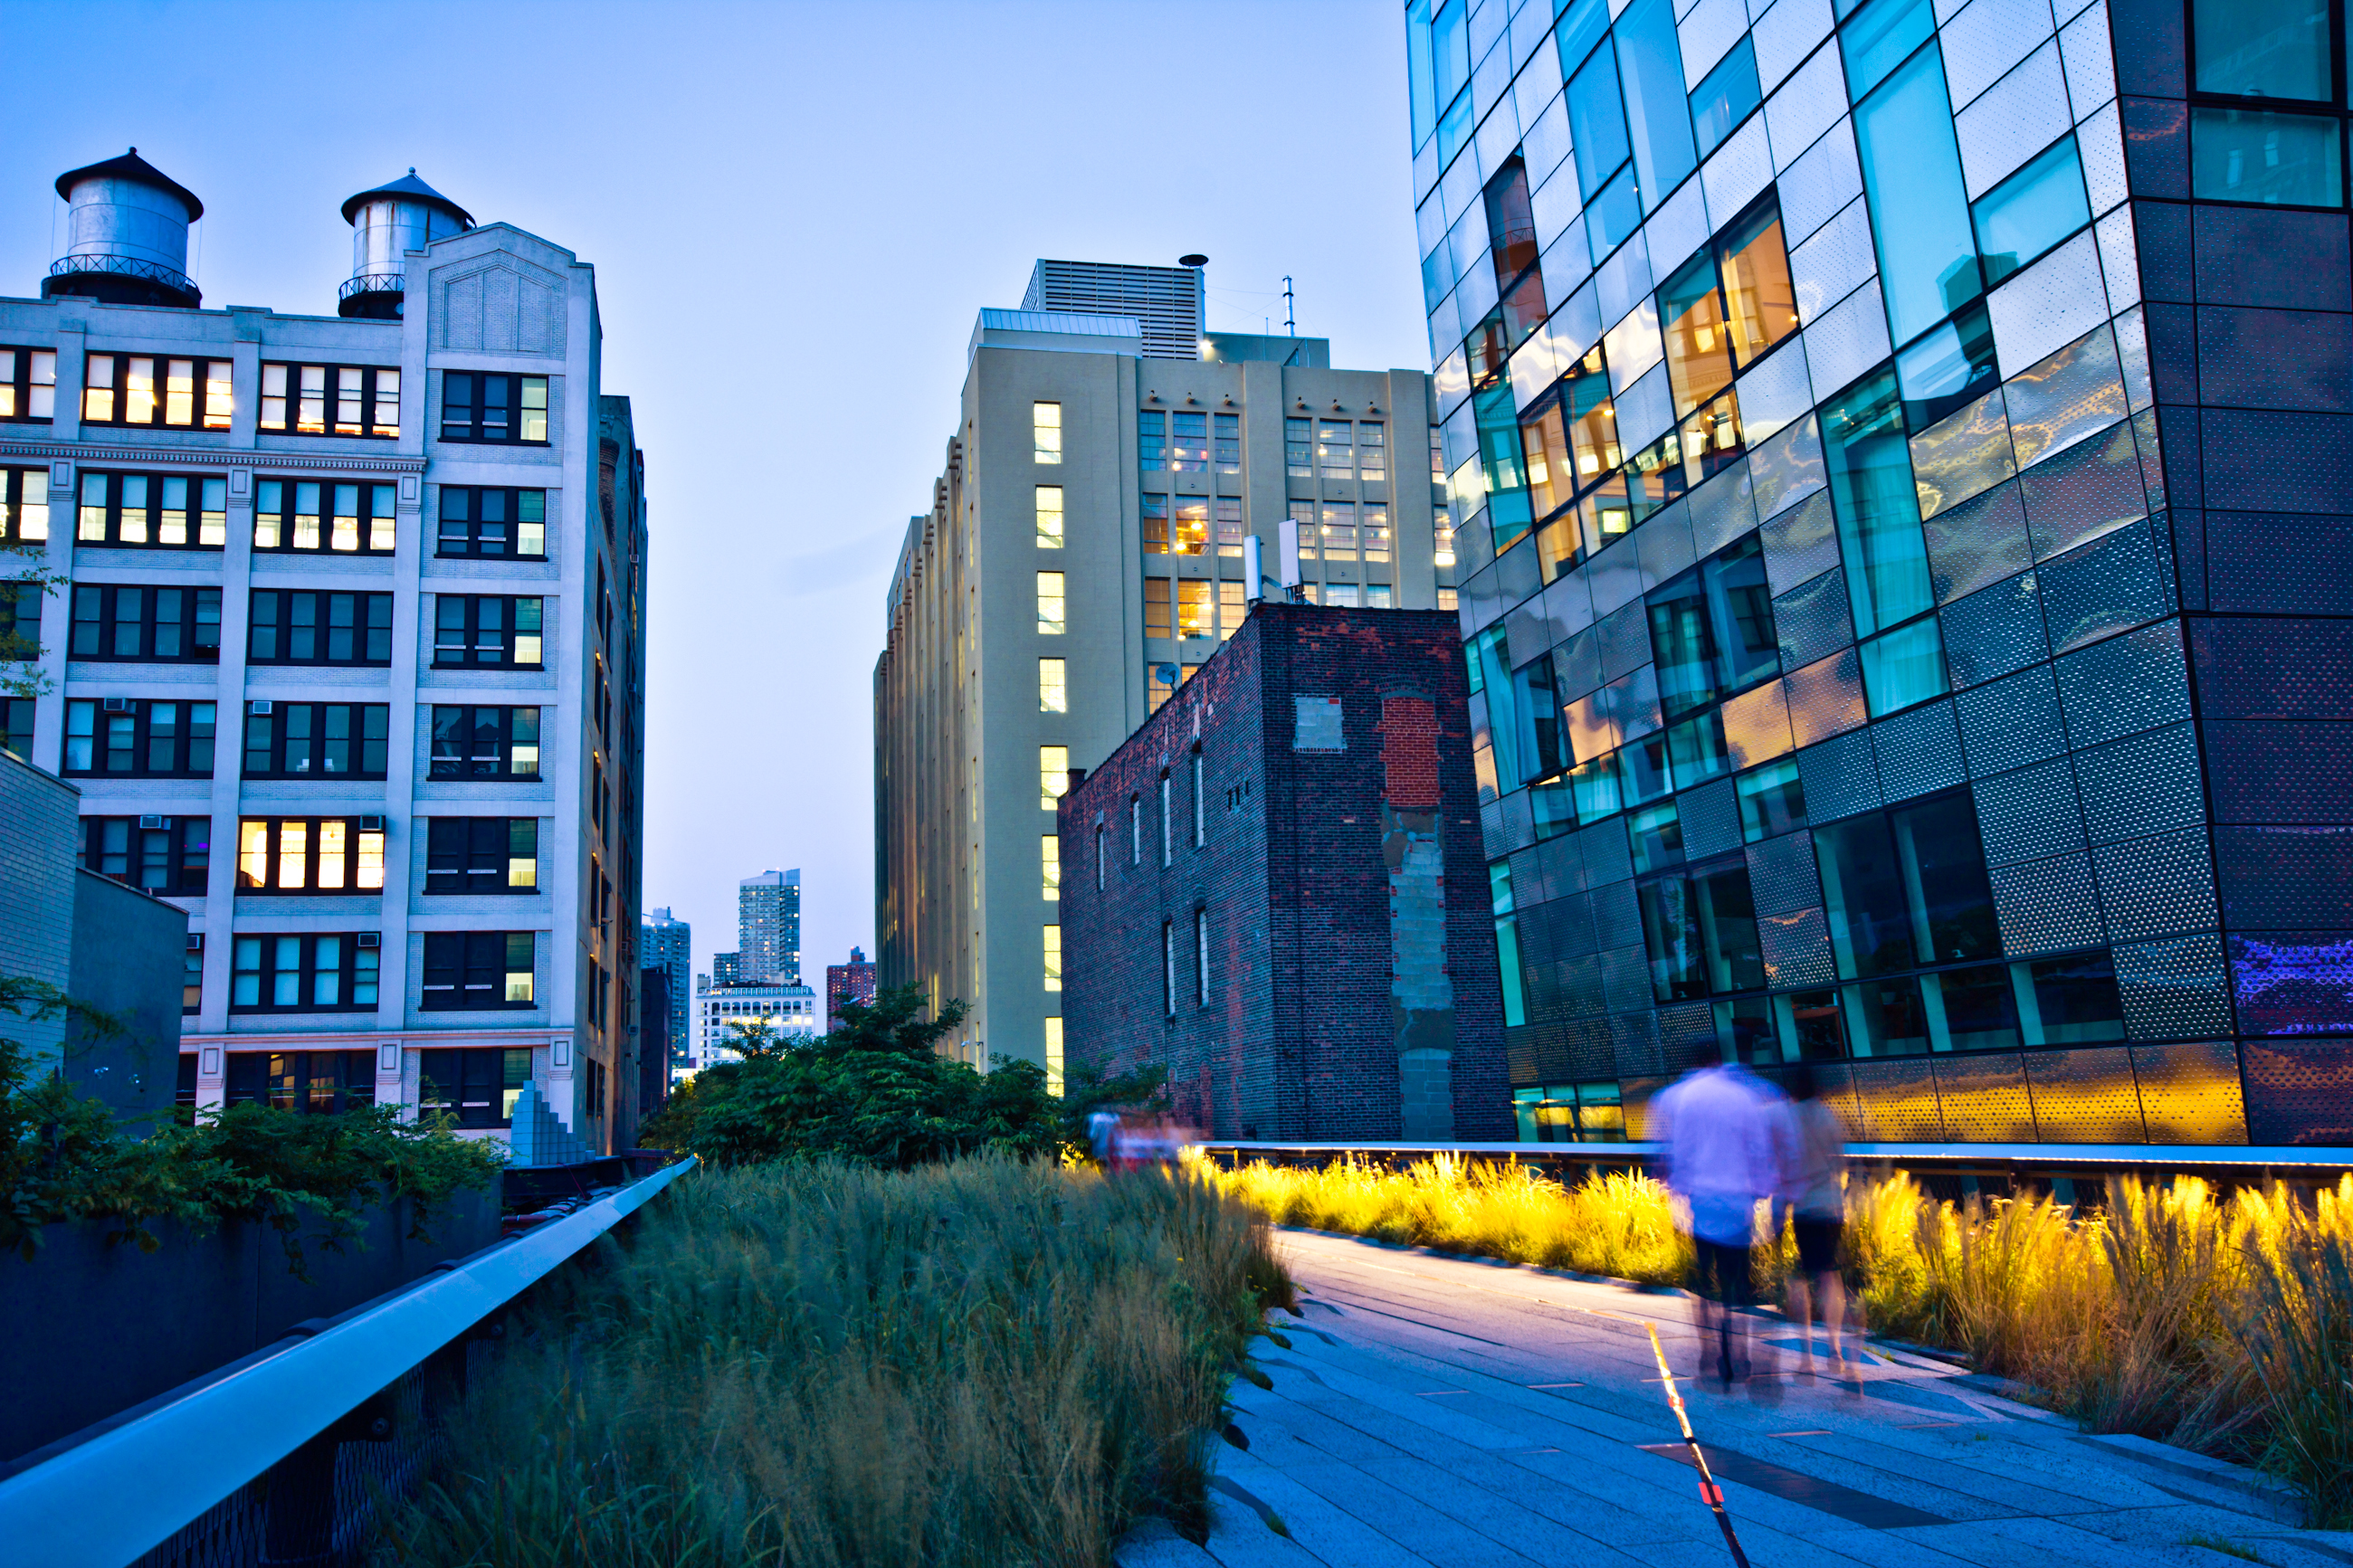 View of the High Line Park in New York City at dusk